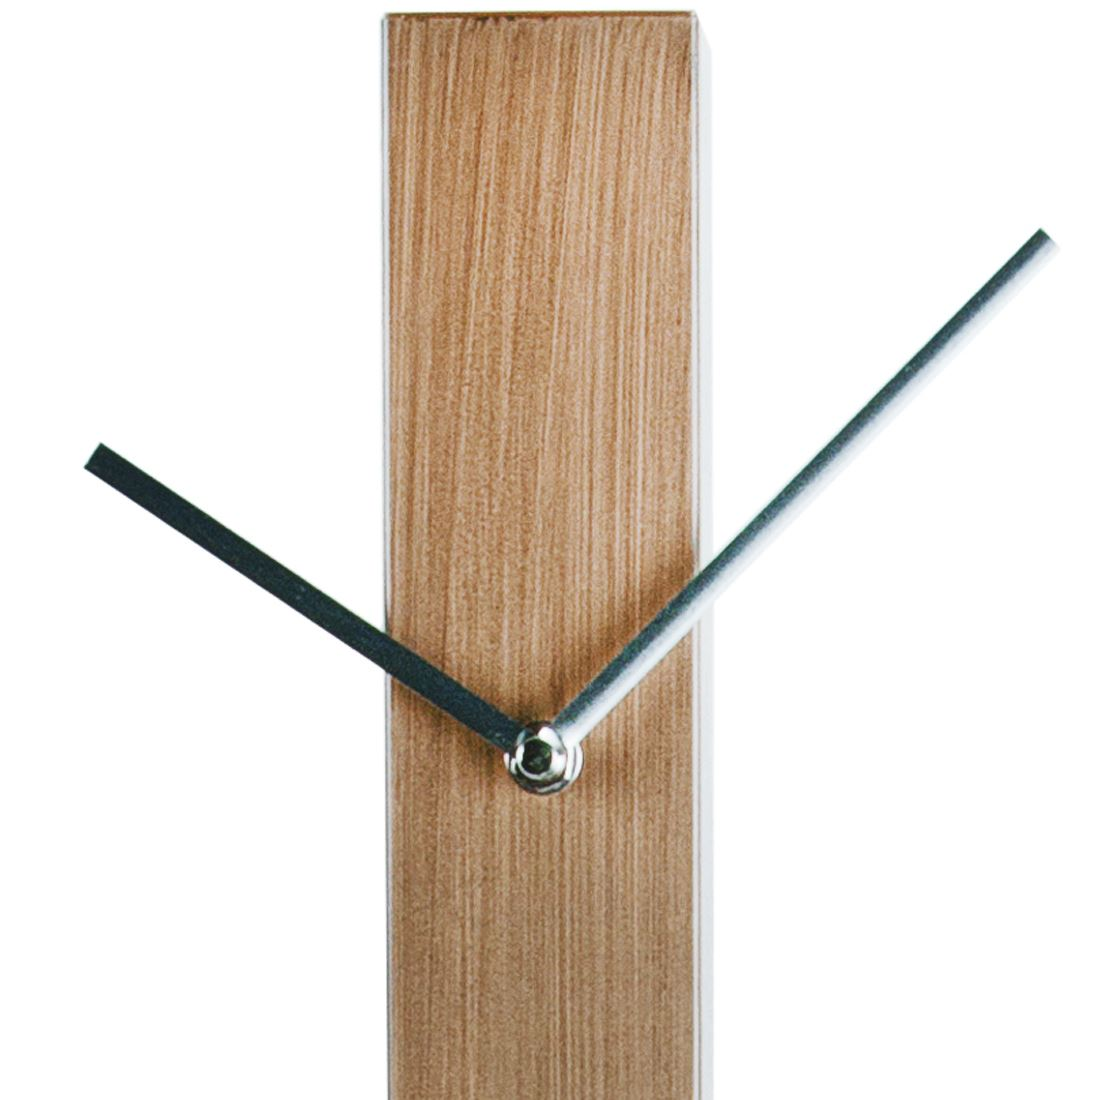 Karlsson tubular pendulum modern long designer home metal wall clock ebay - Stylish pendulum wall clock ...